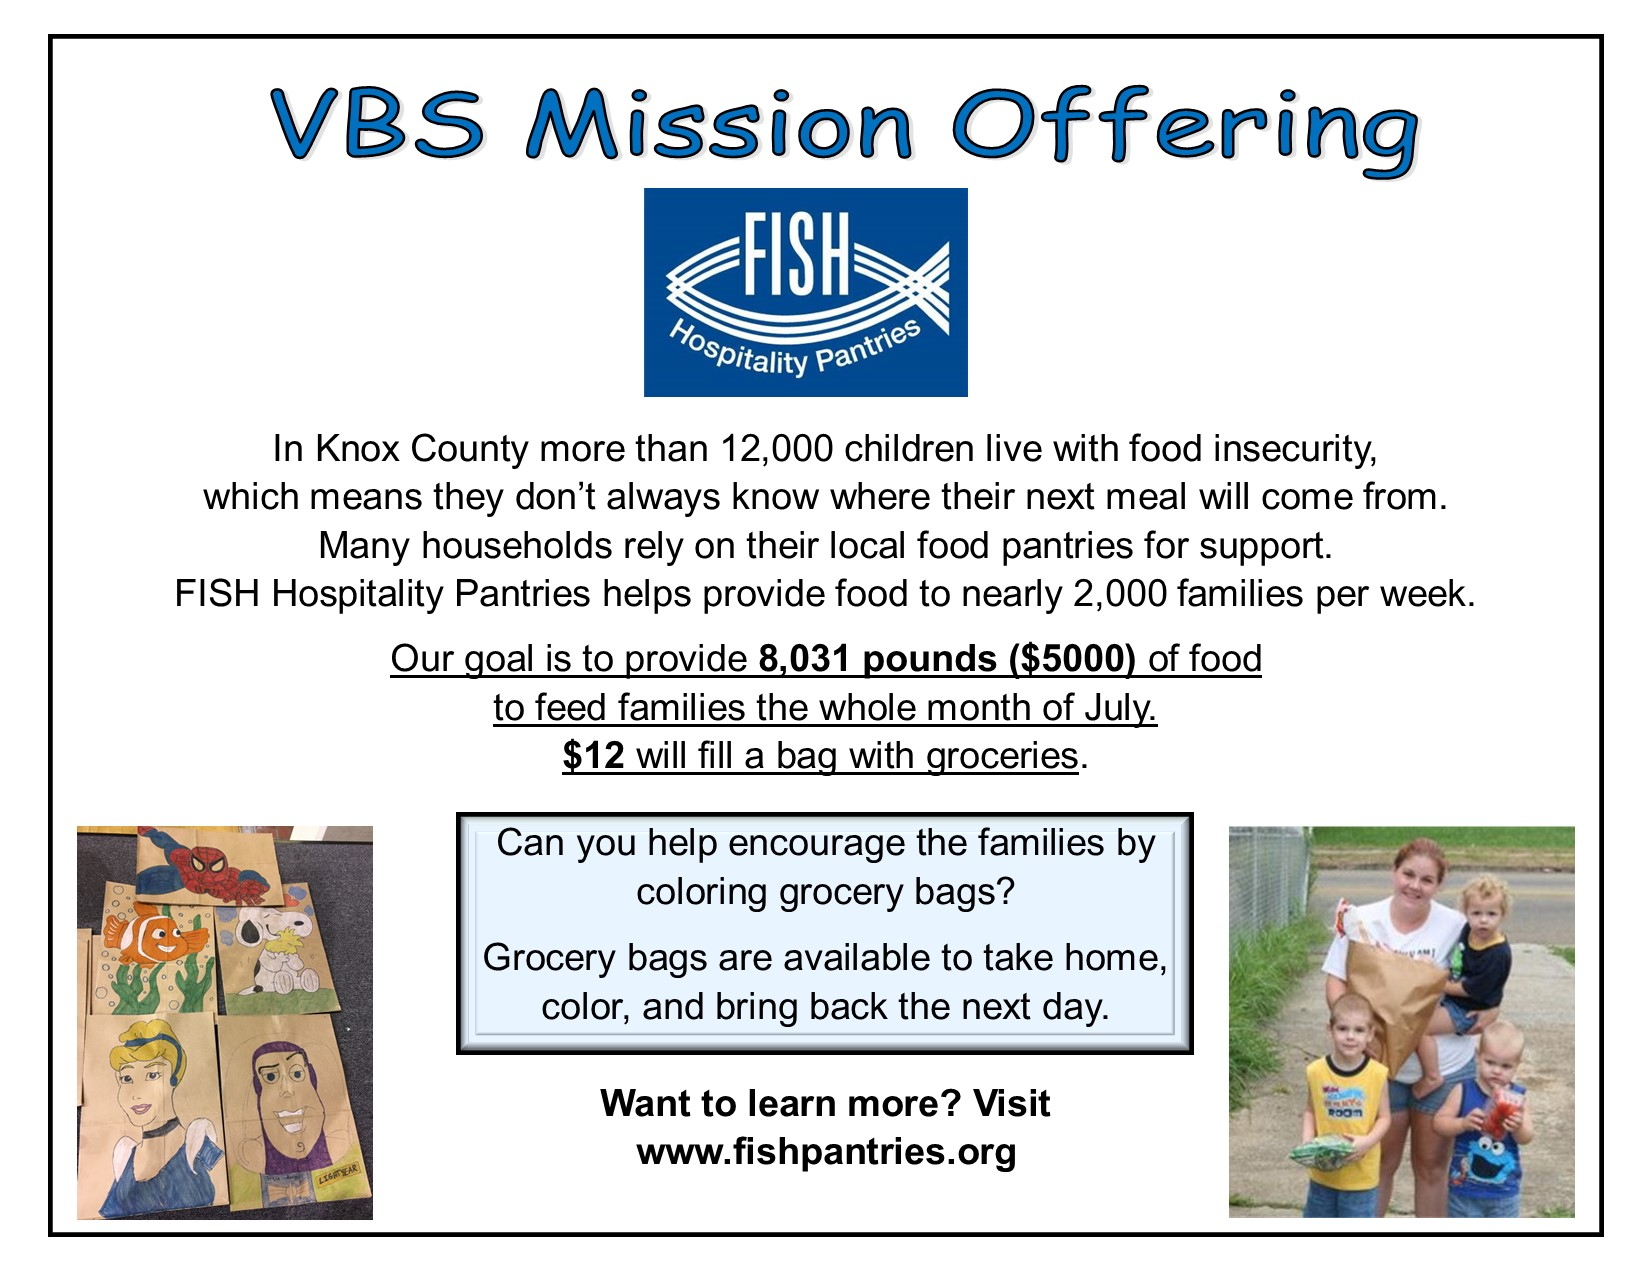 Mission offering flyer 2021 Fish food pantry